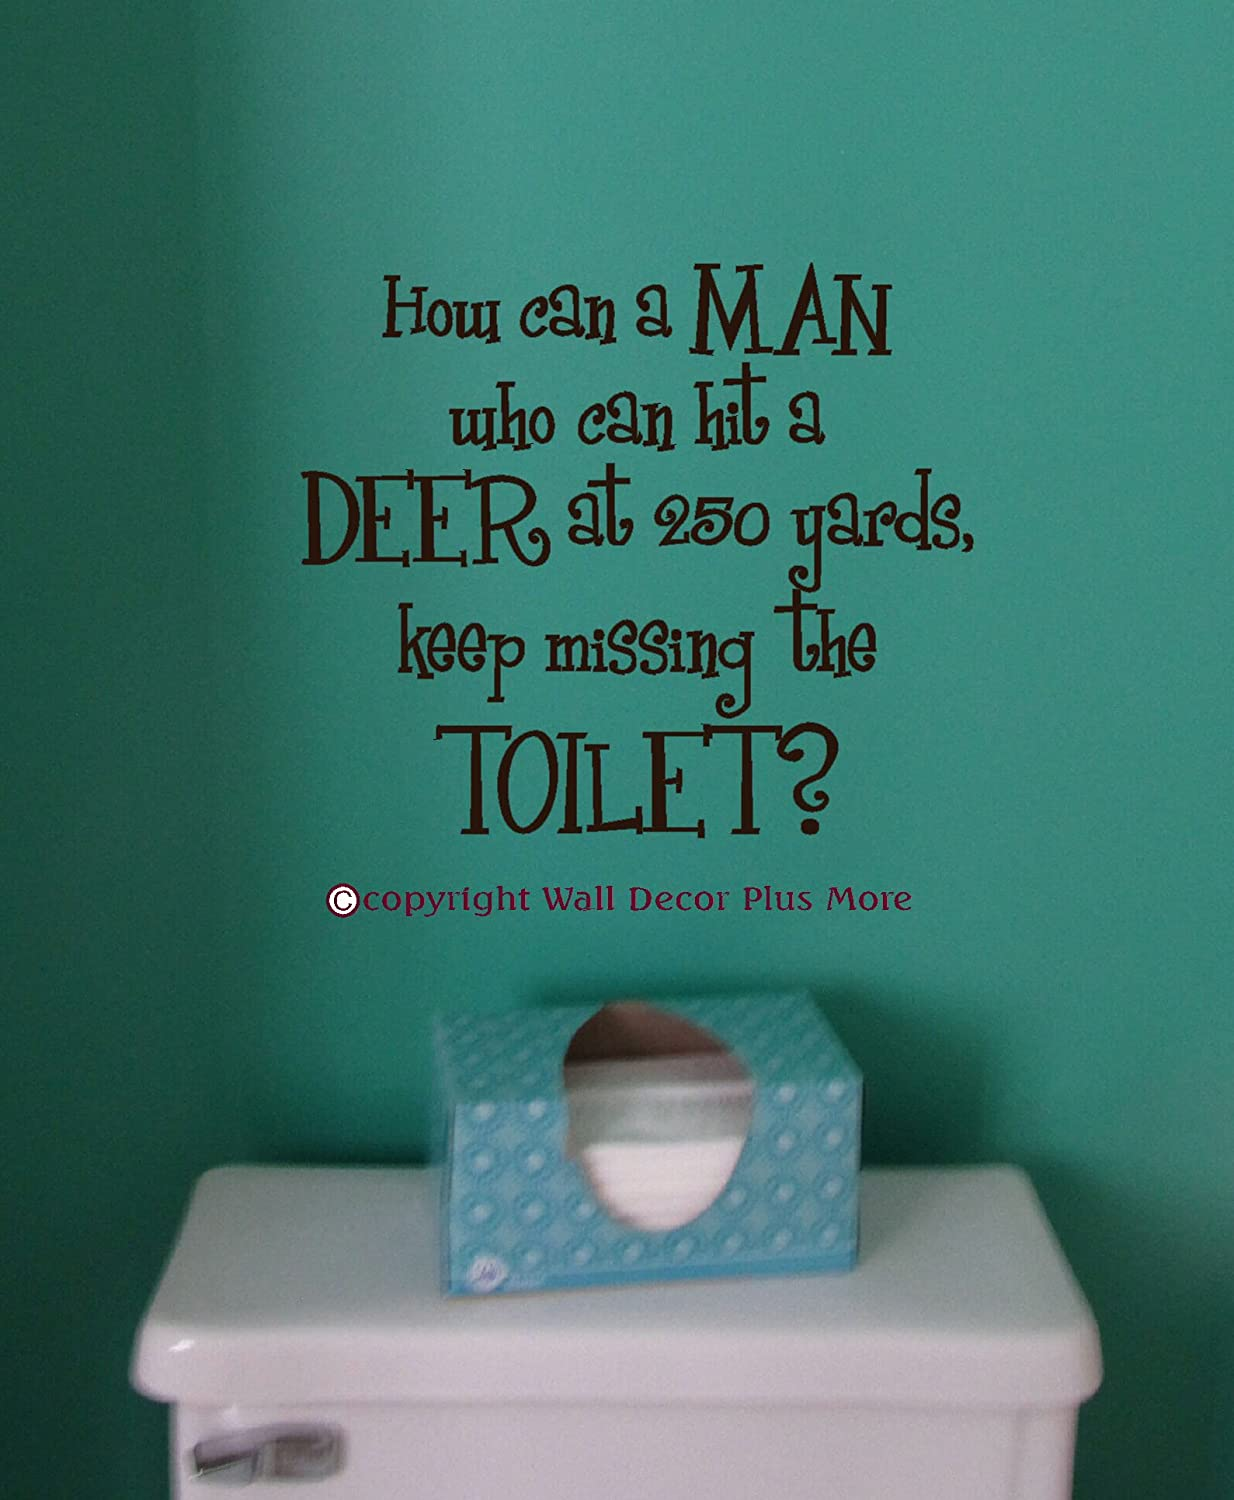 wall decor plus more wdpm2955 how can a man keep missing the wall decor plus more wdpm2955 how can a man keep missing the toilet funny quote wall decal 14 inch x 12 inch chocolate brown amazon com